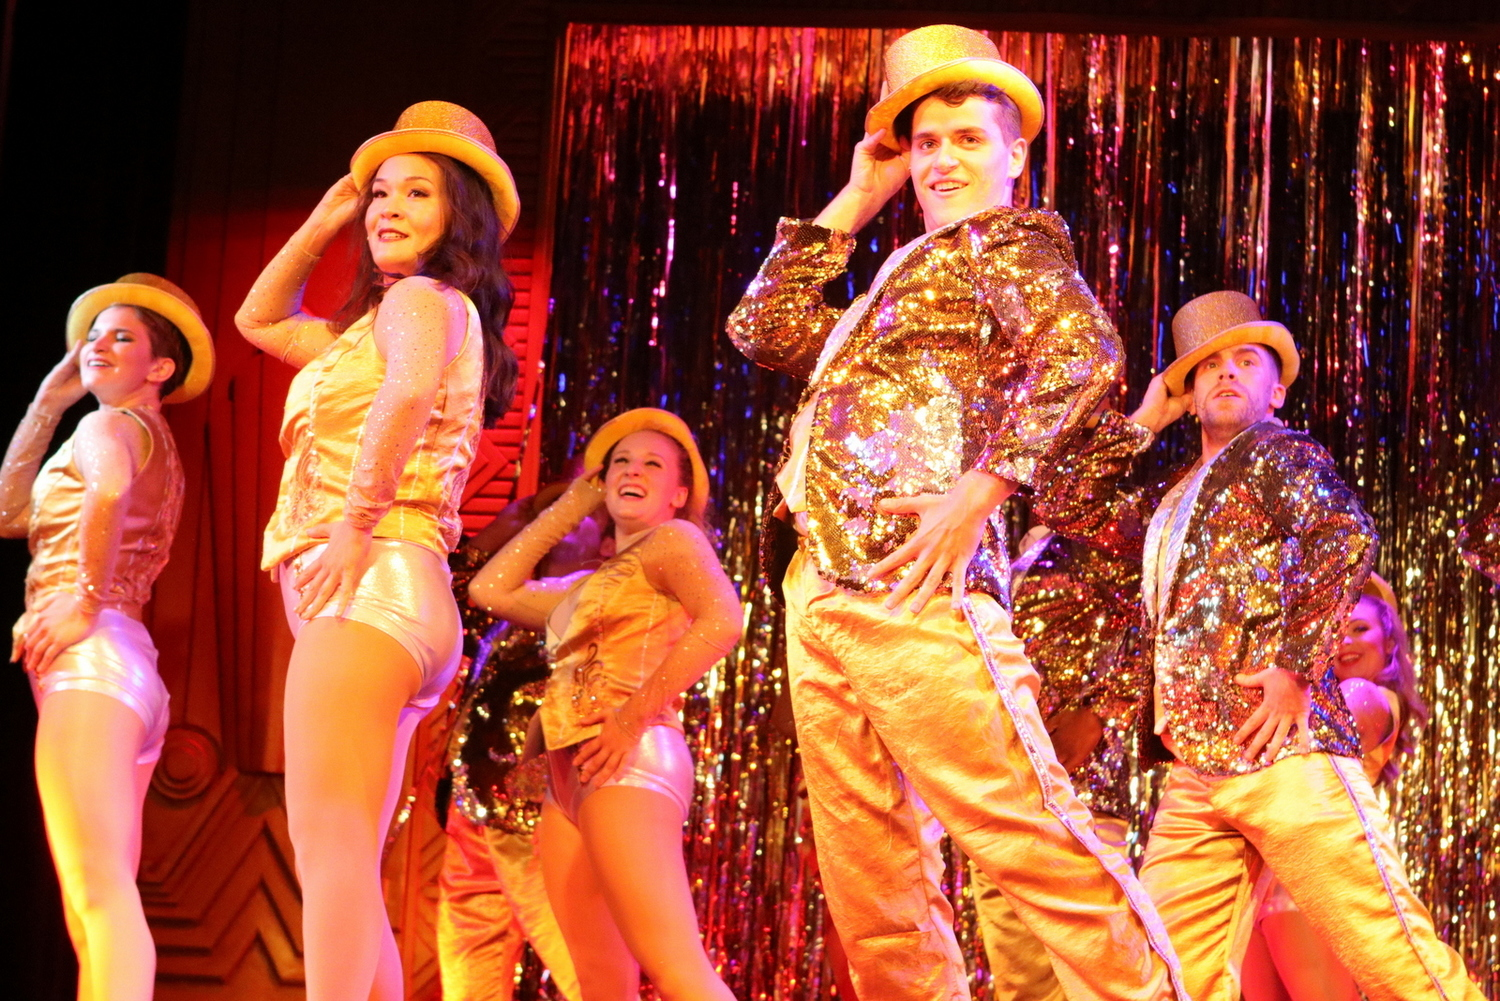 BWW Review: A CHORUS LINE at Ivoryton Playhouse